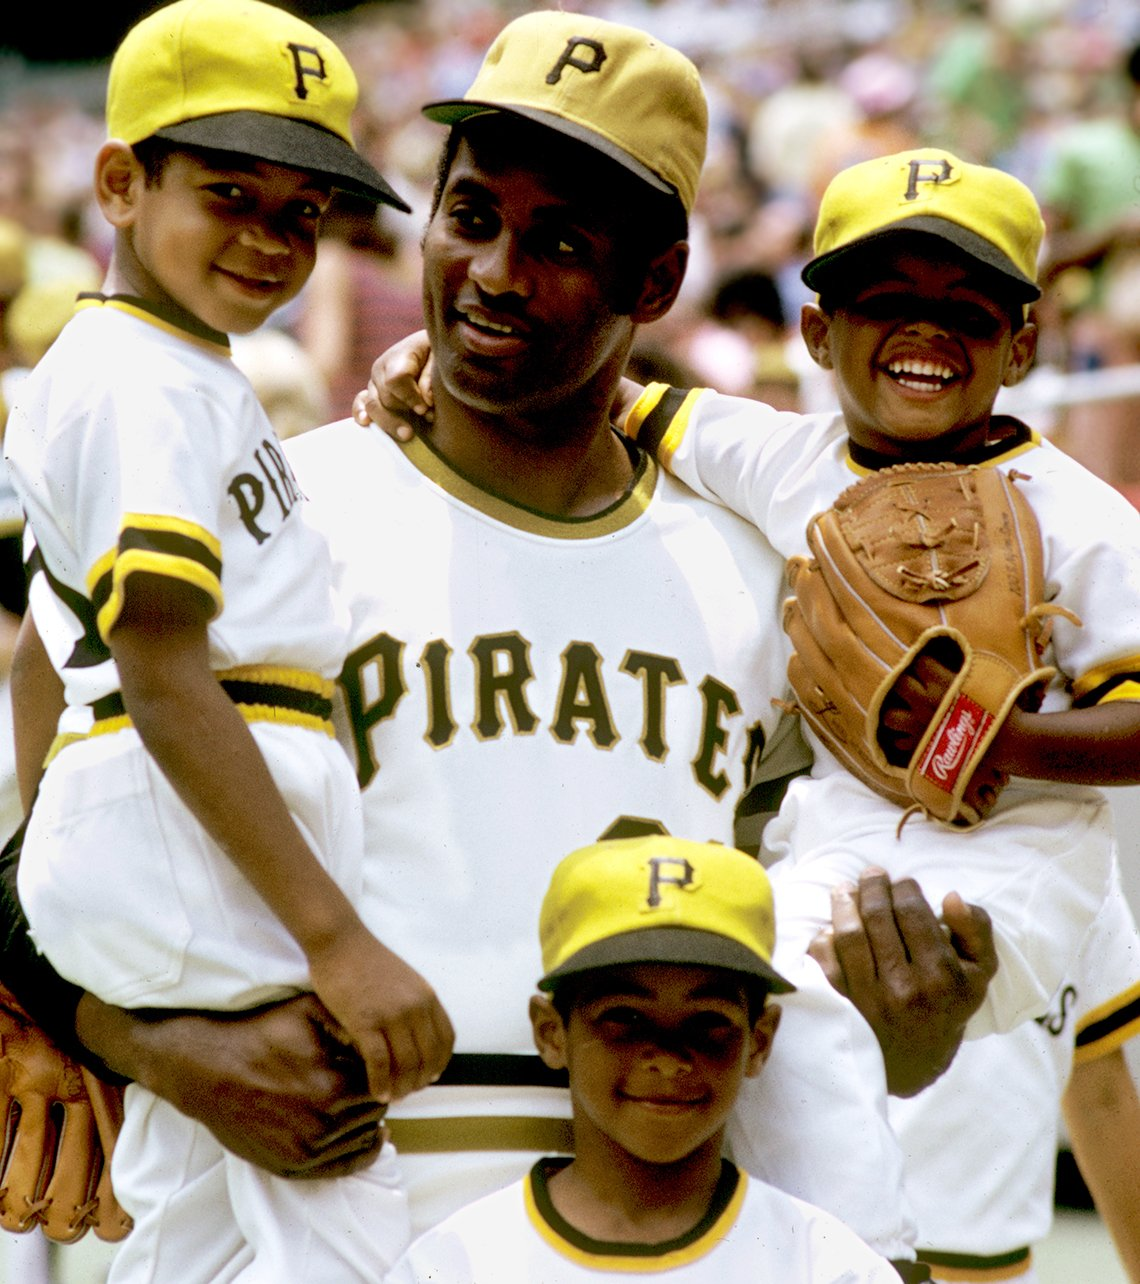 Pittsburgh Pirates Roberto Clemente stands in front of his father and brothers